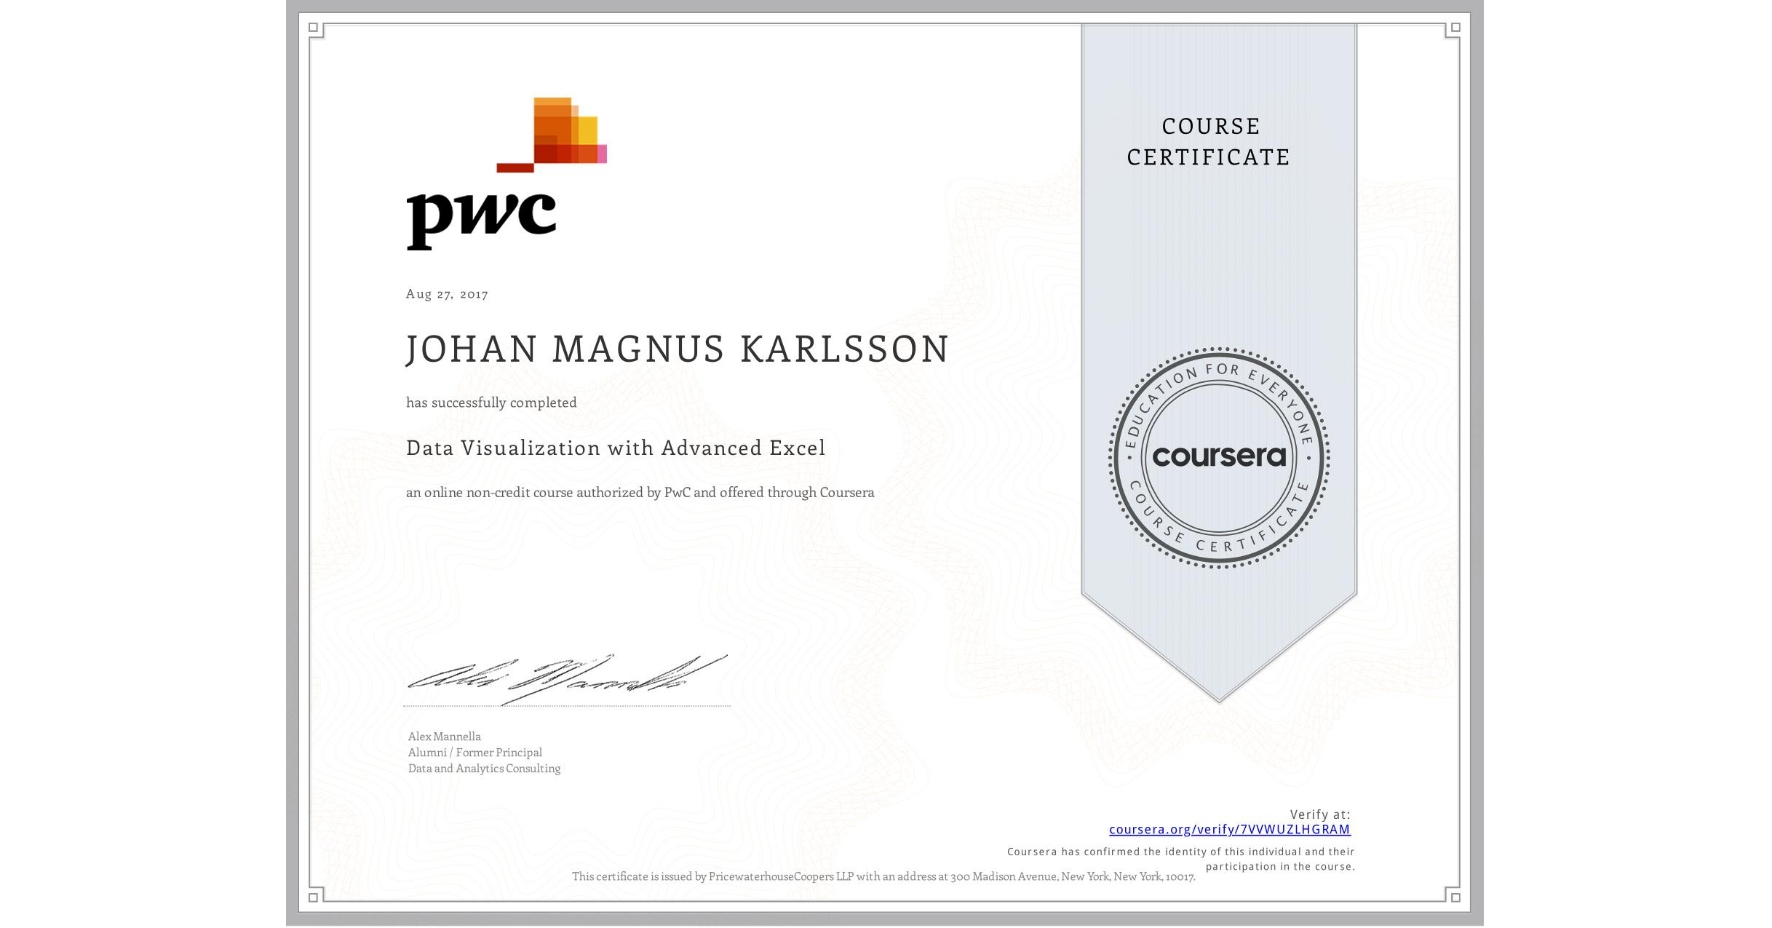 View certificate for JOHAN MAGNUS  KARLSSON, Data Visualization with Advanced Excel, an online non-credit course authorized by PwC and offered through Coursera